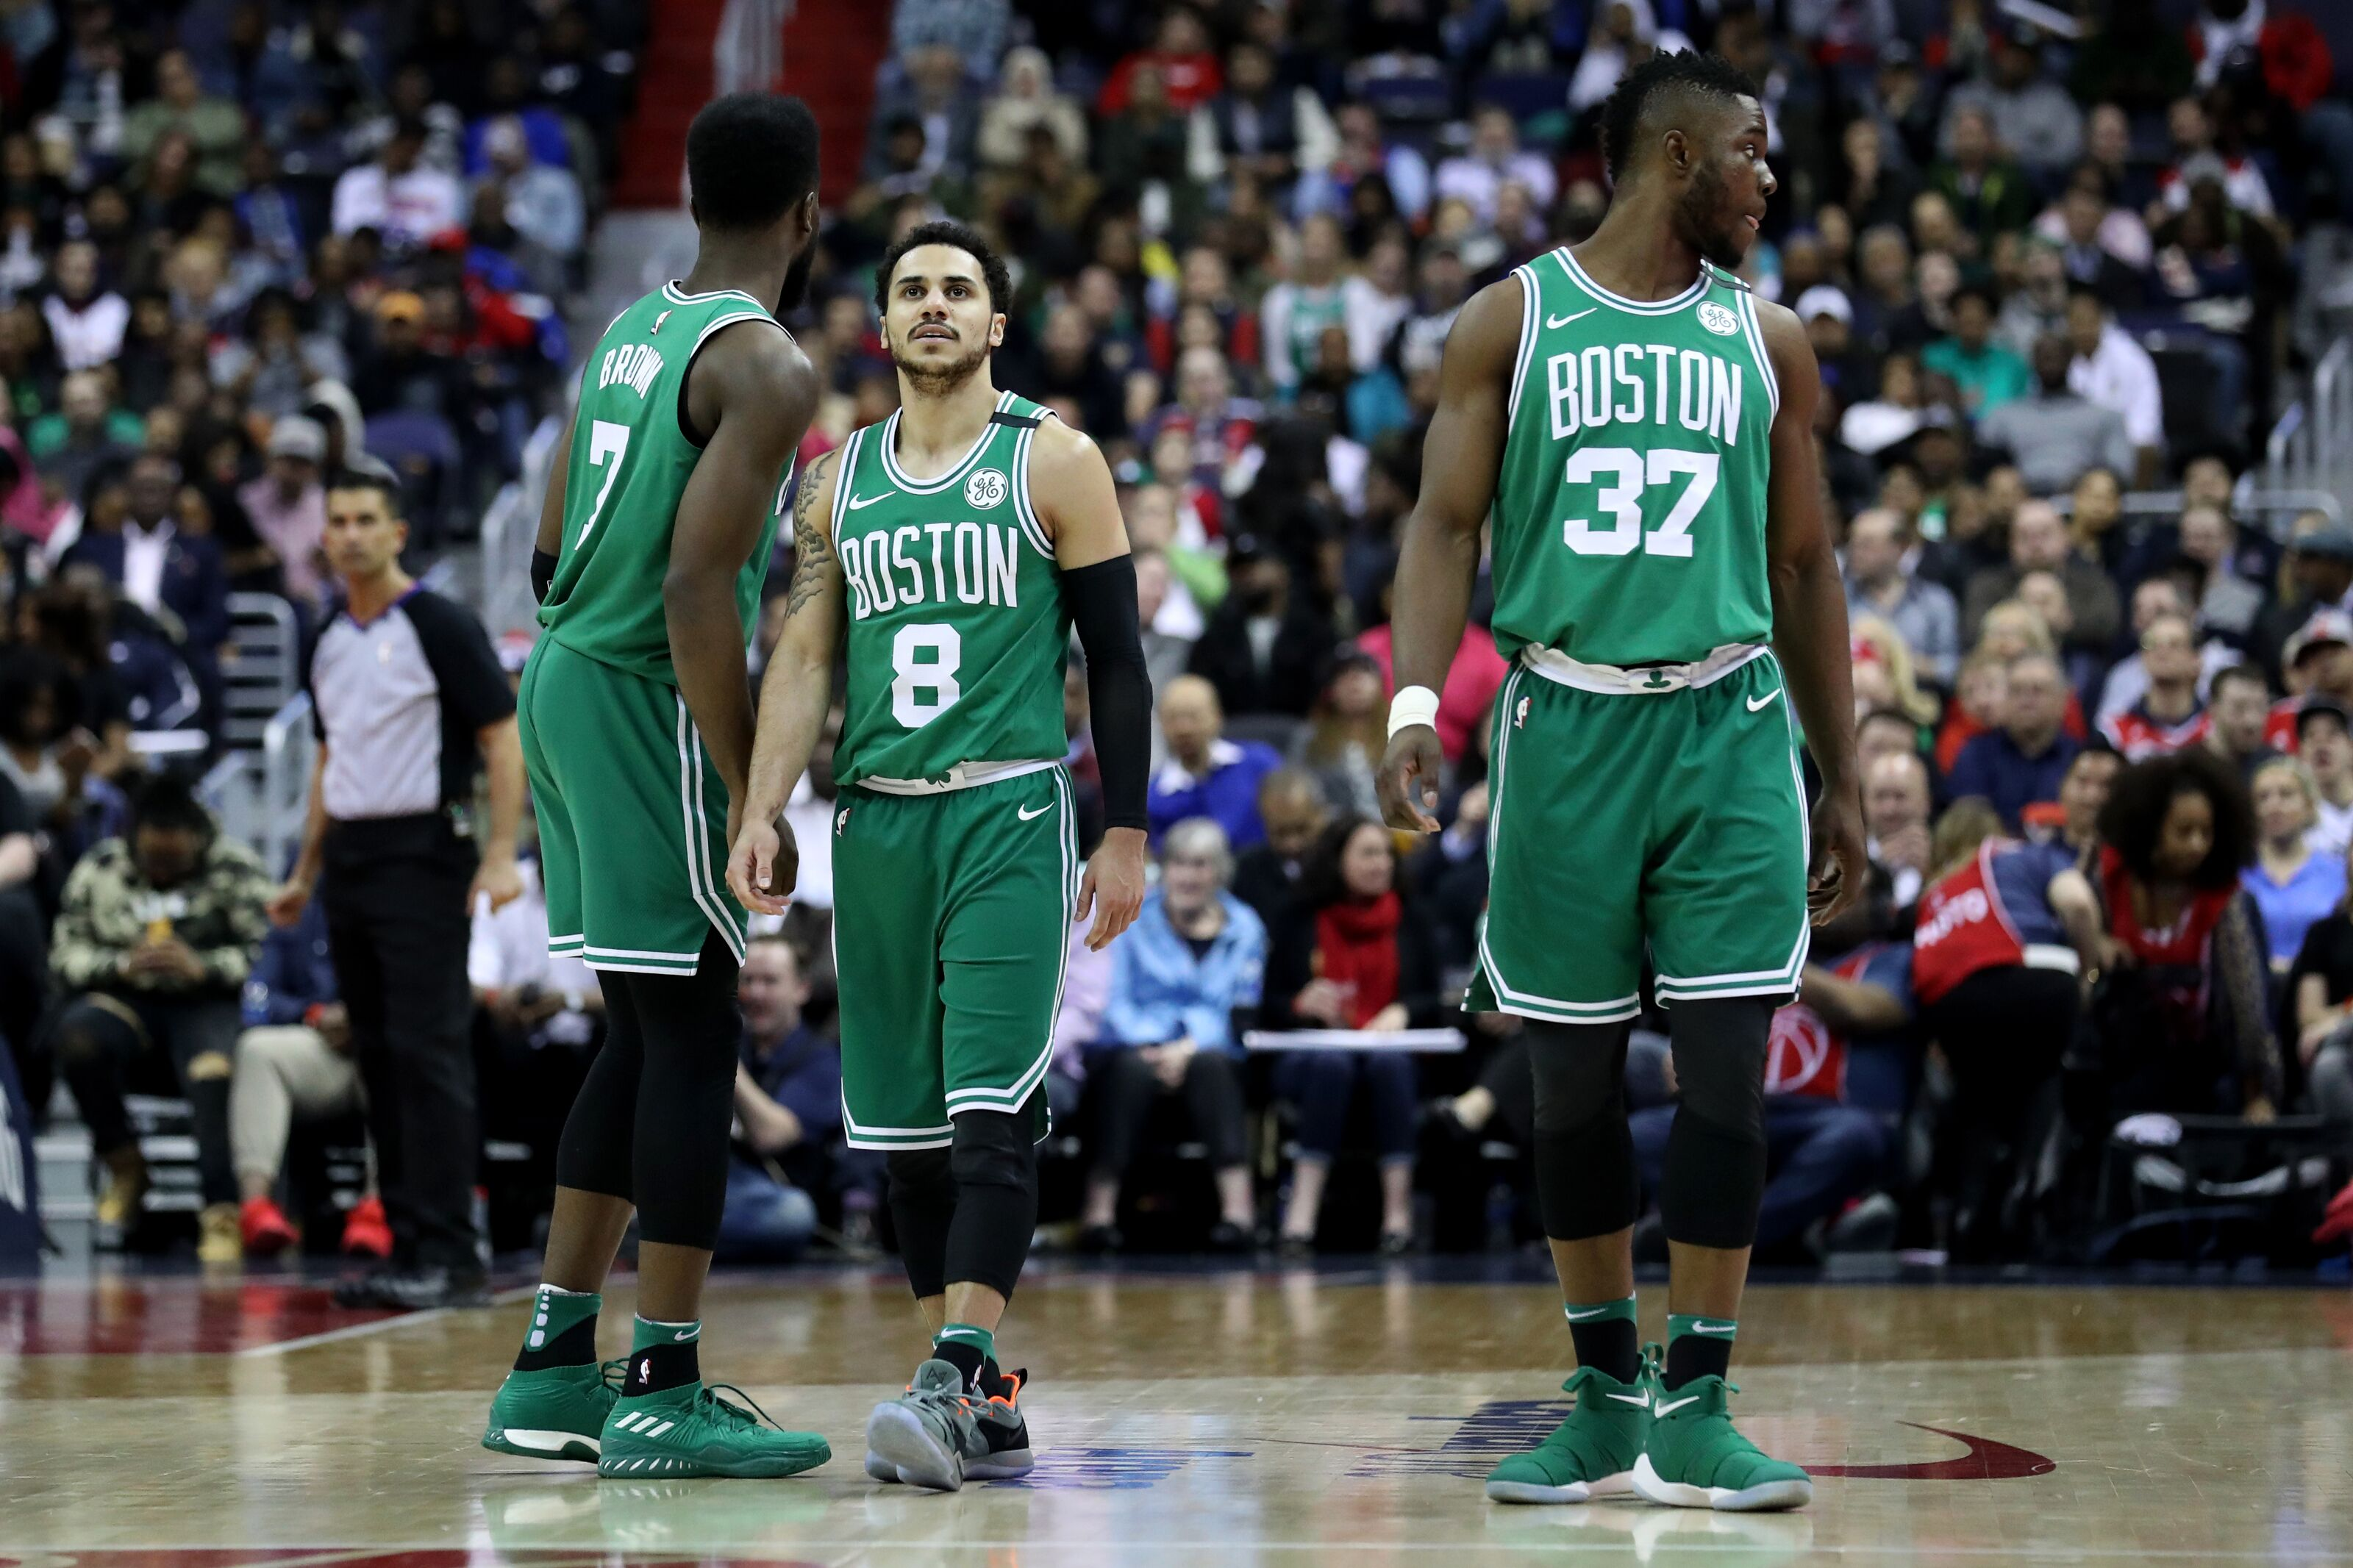 944512900-boston-celtics-v-washington-wizards.jpg